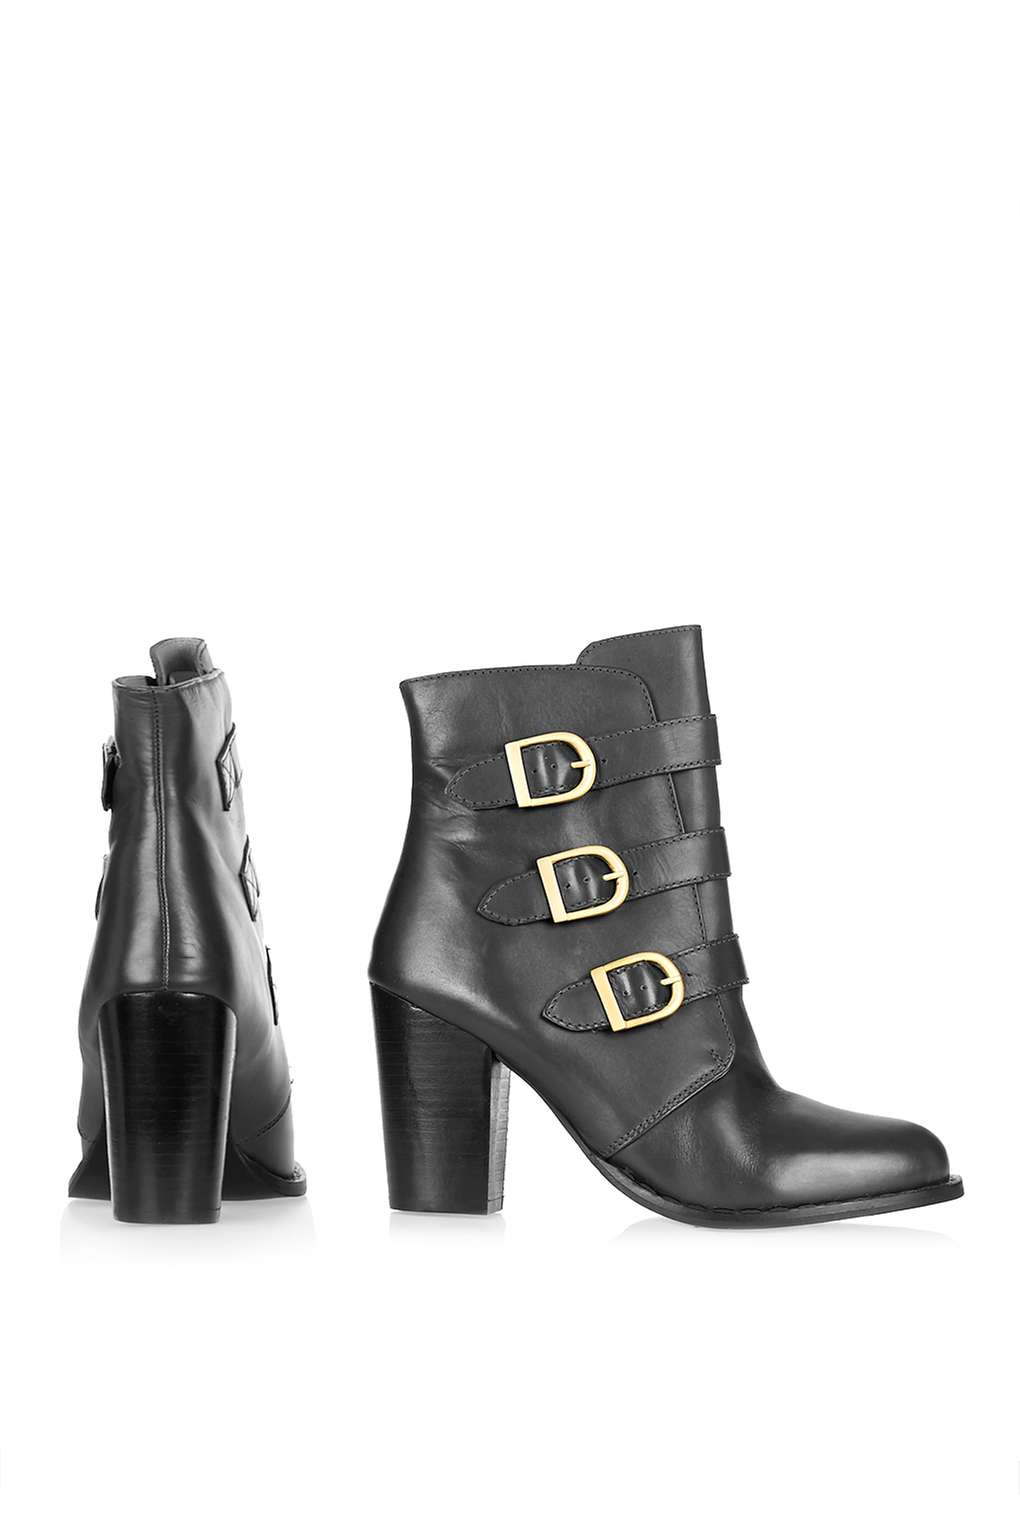 TOPSHOP Leather 'horoscope' Ankle Boot in Black